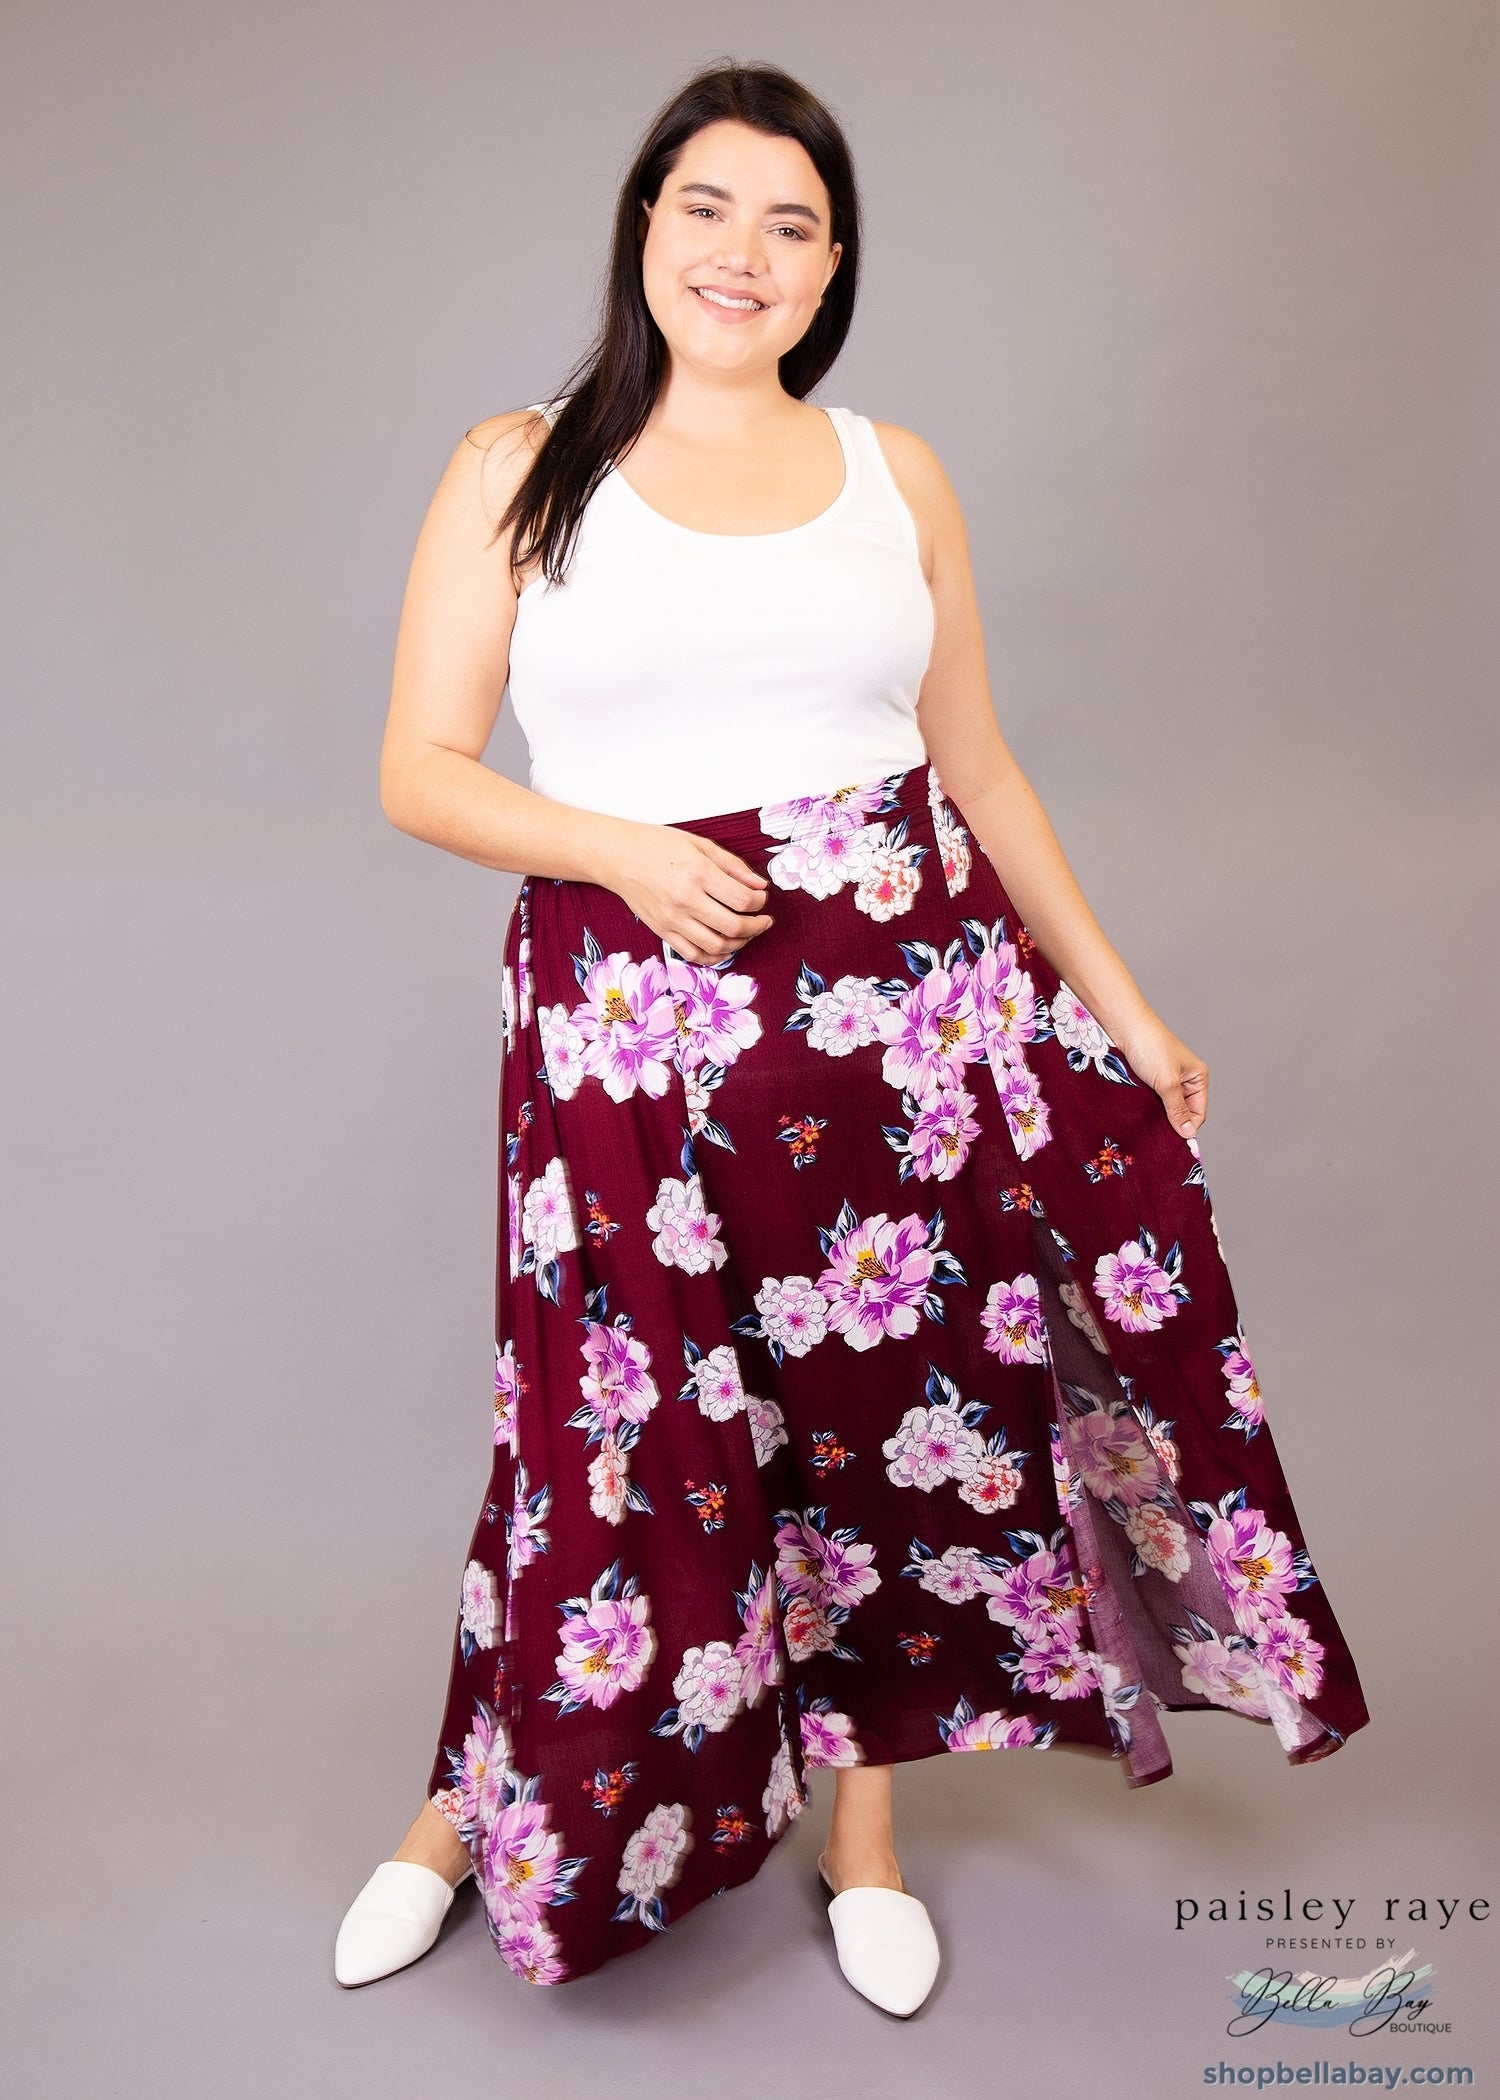 Paisley Raye Morning Glory Maxi Skirt- Burgundy with Floral (1X) - Paisley Raye with Bella Bay Boutique, shop now at  https://shopbellabay.com/ or locally in Newport Oregon